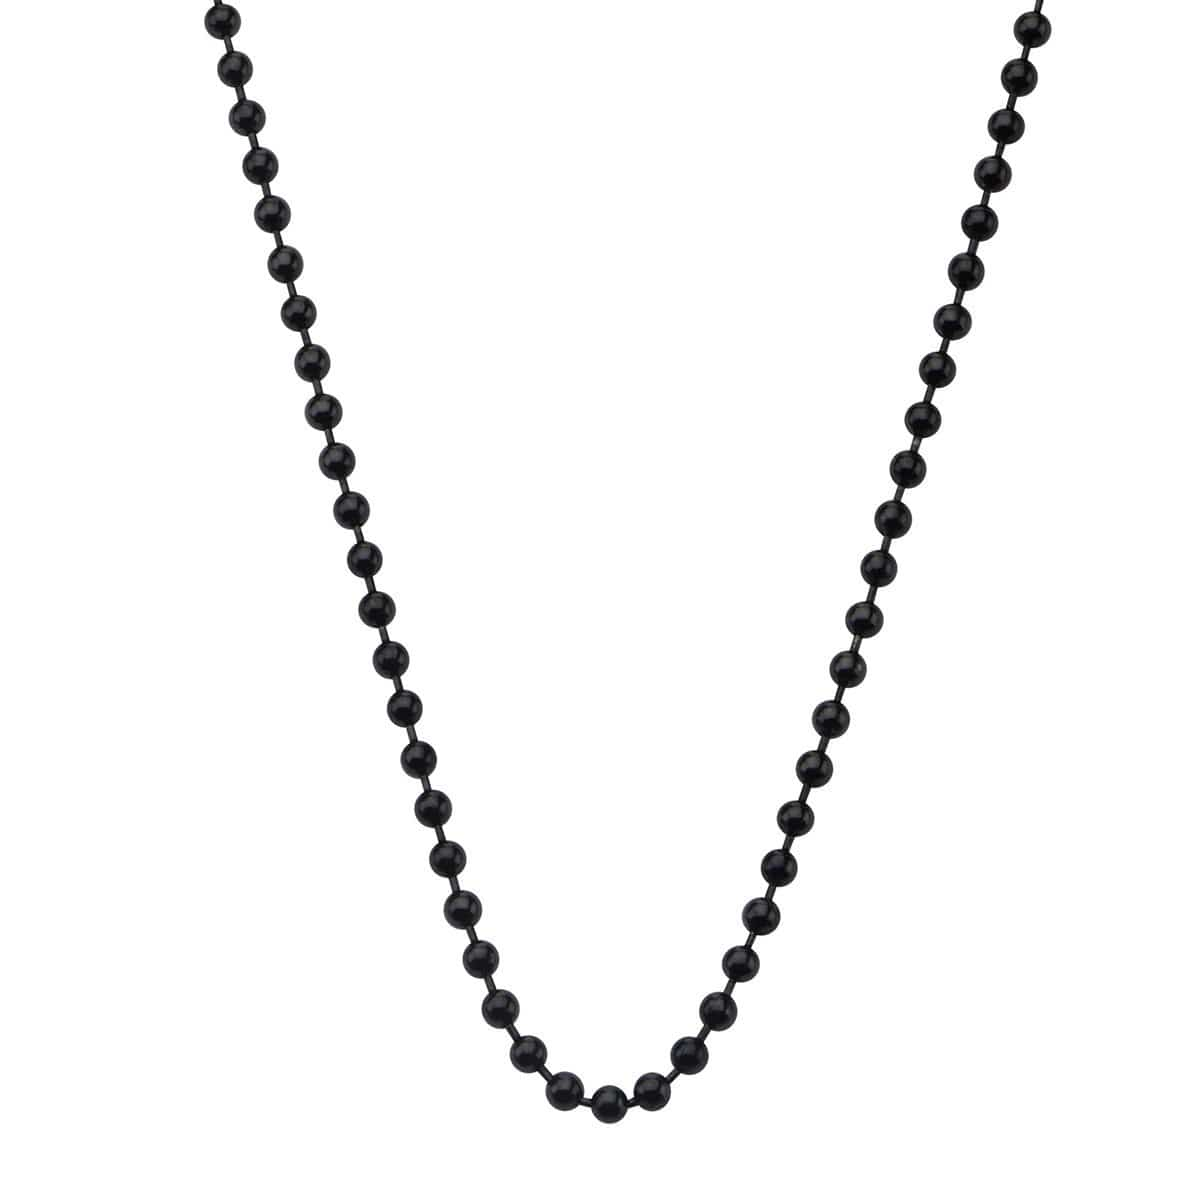 Black Stainless Steel 3mm Ball Chain with Lobster Claw-Closure Chains